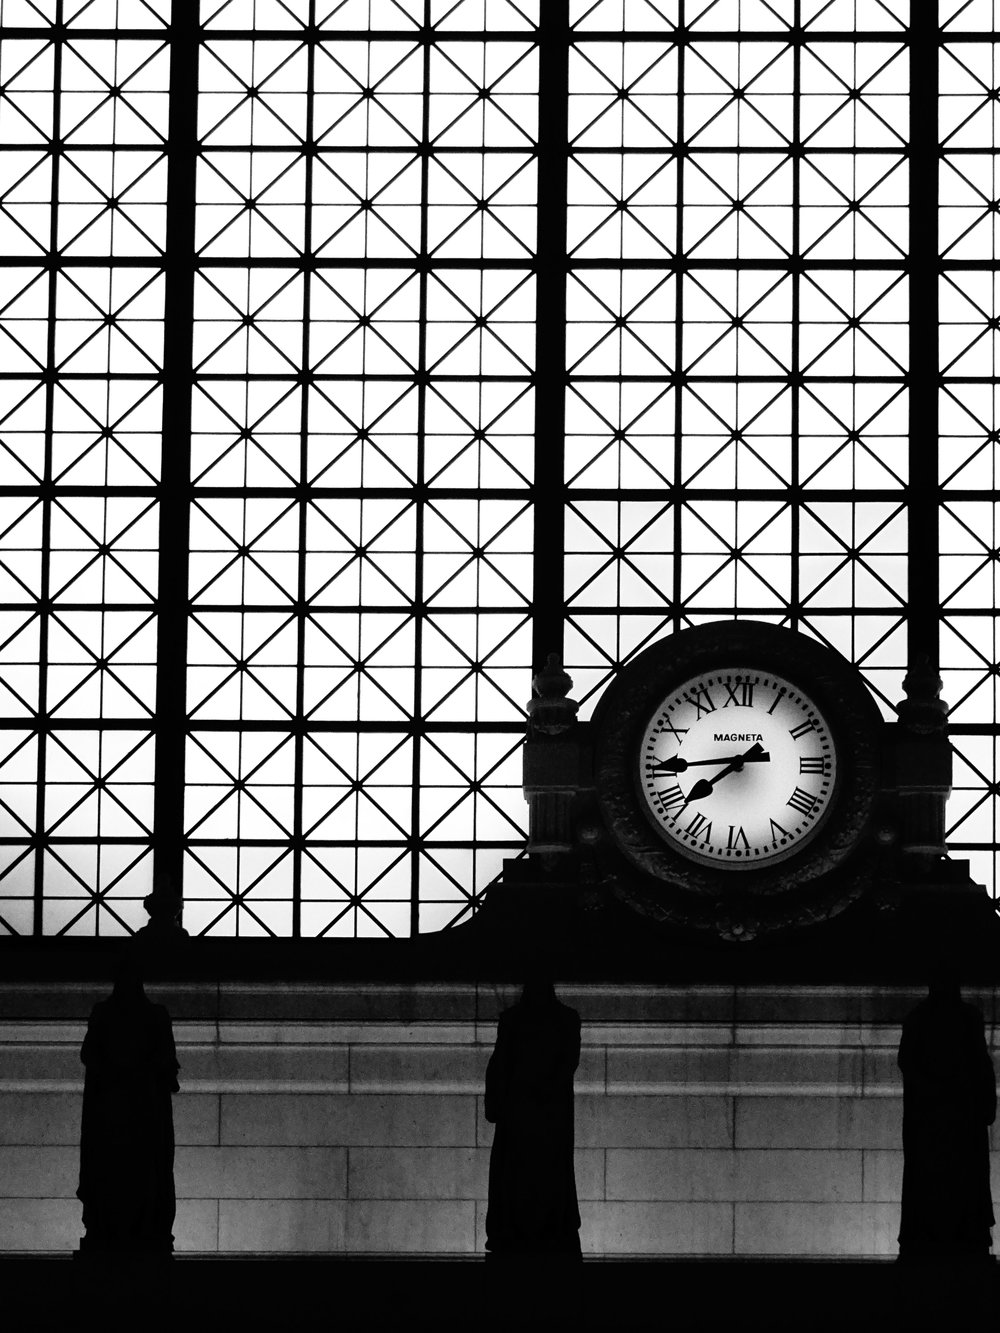 Union Station BW-020.jpg